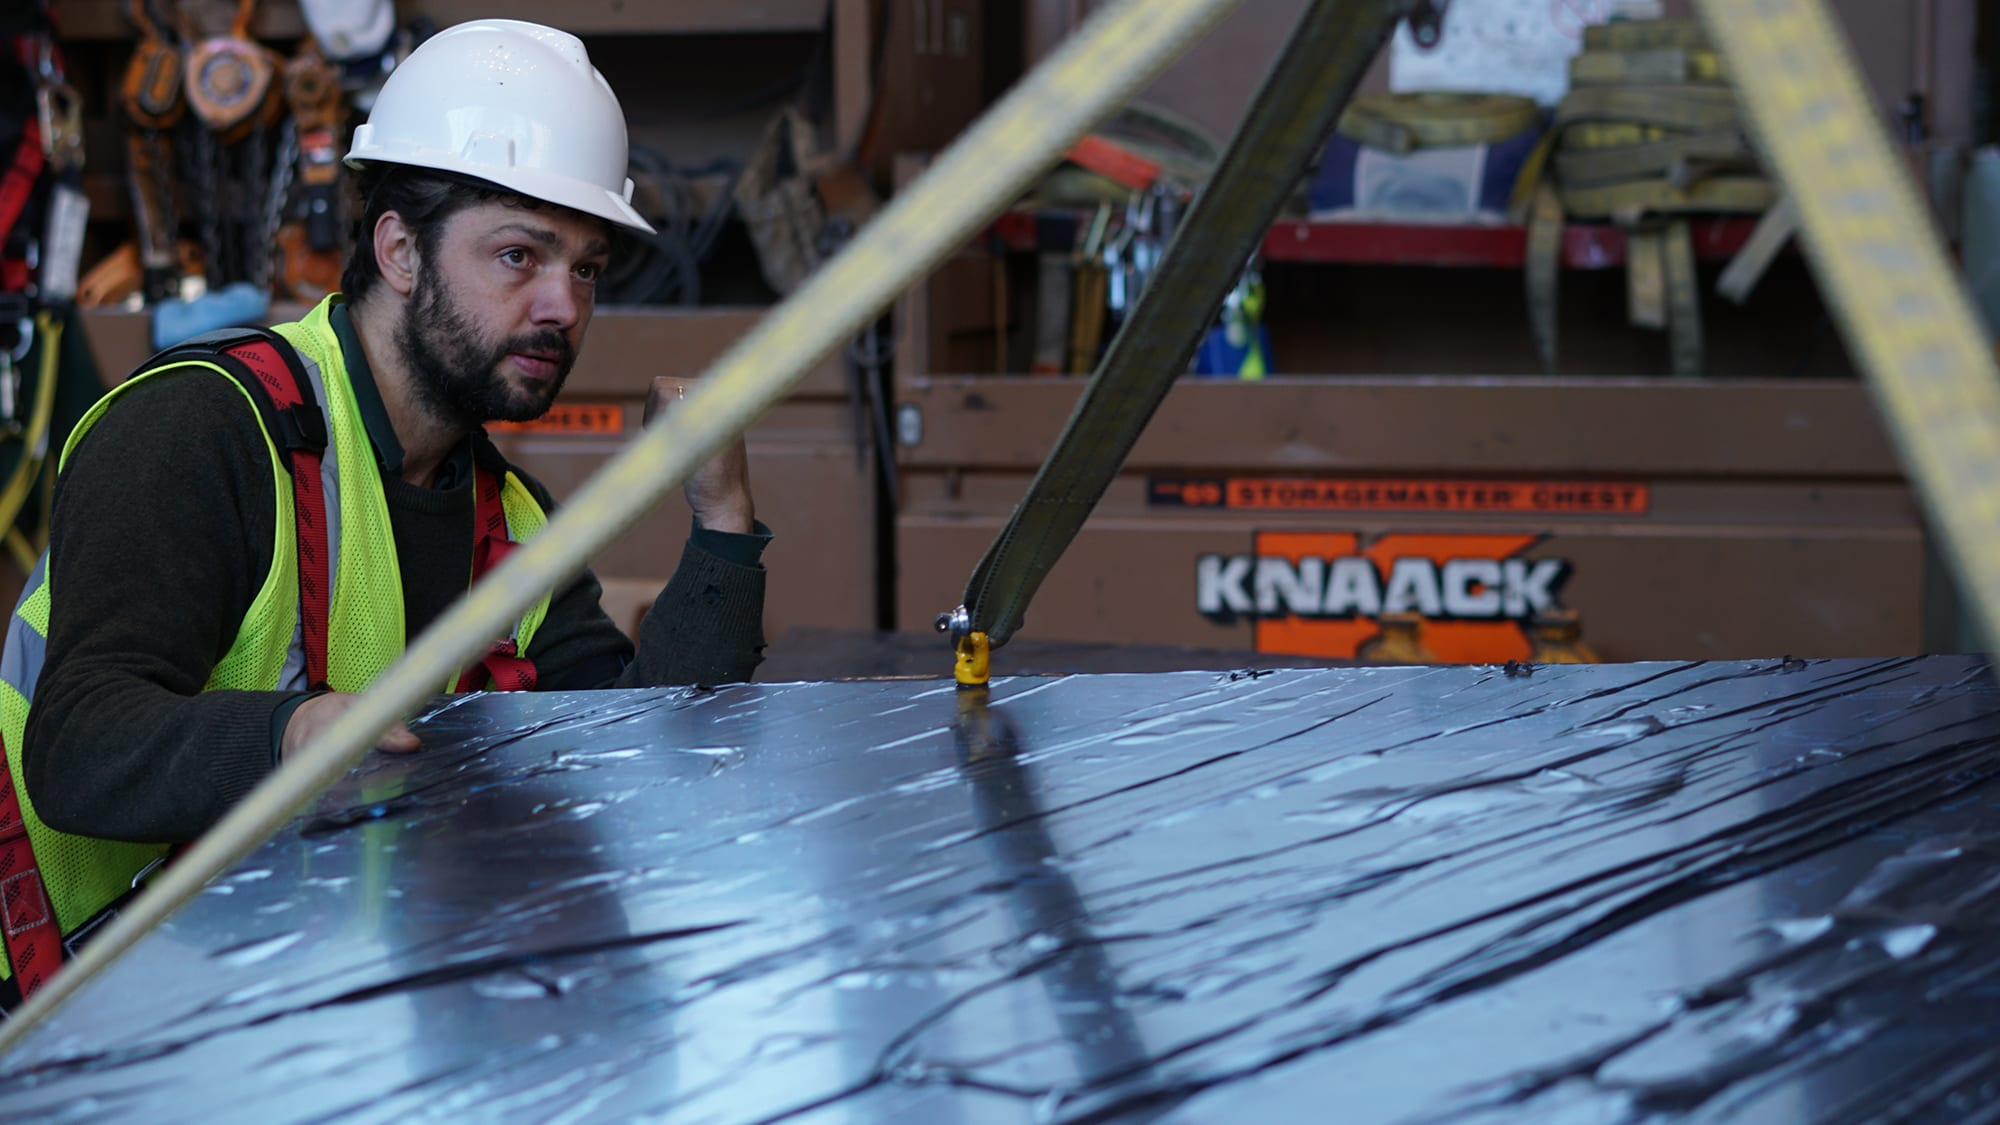 Conrad Shawcross installing artwork